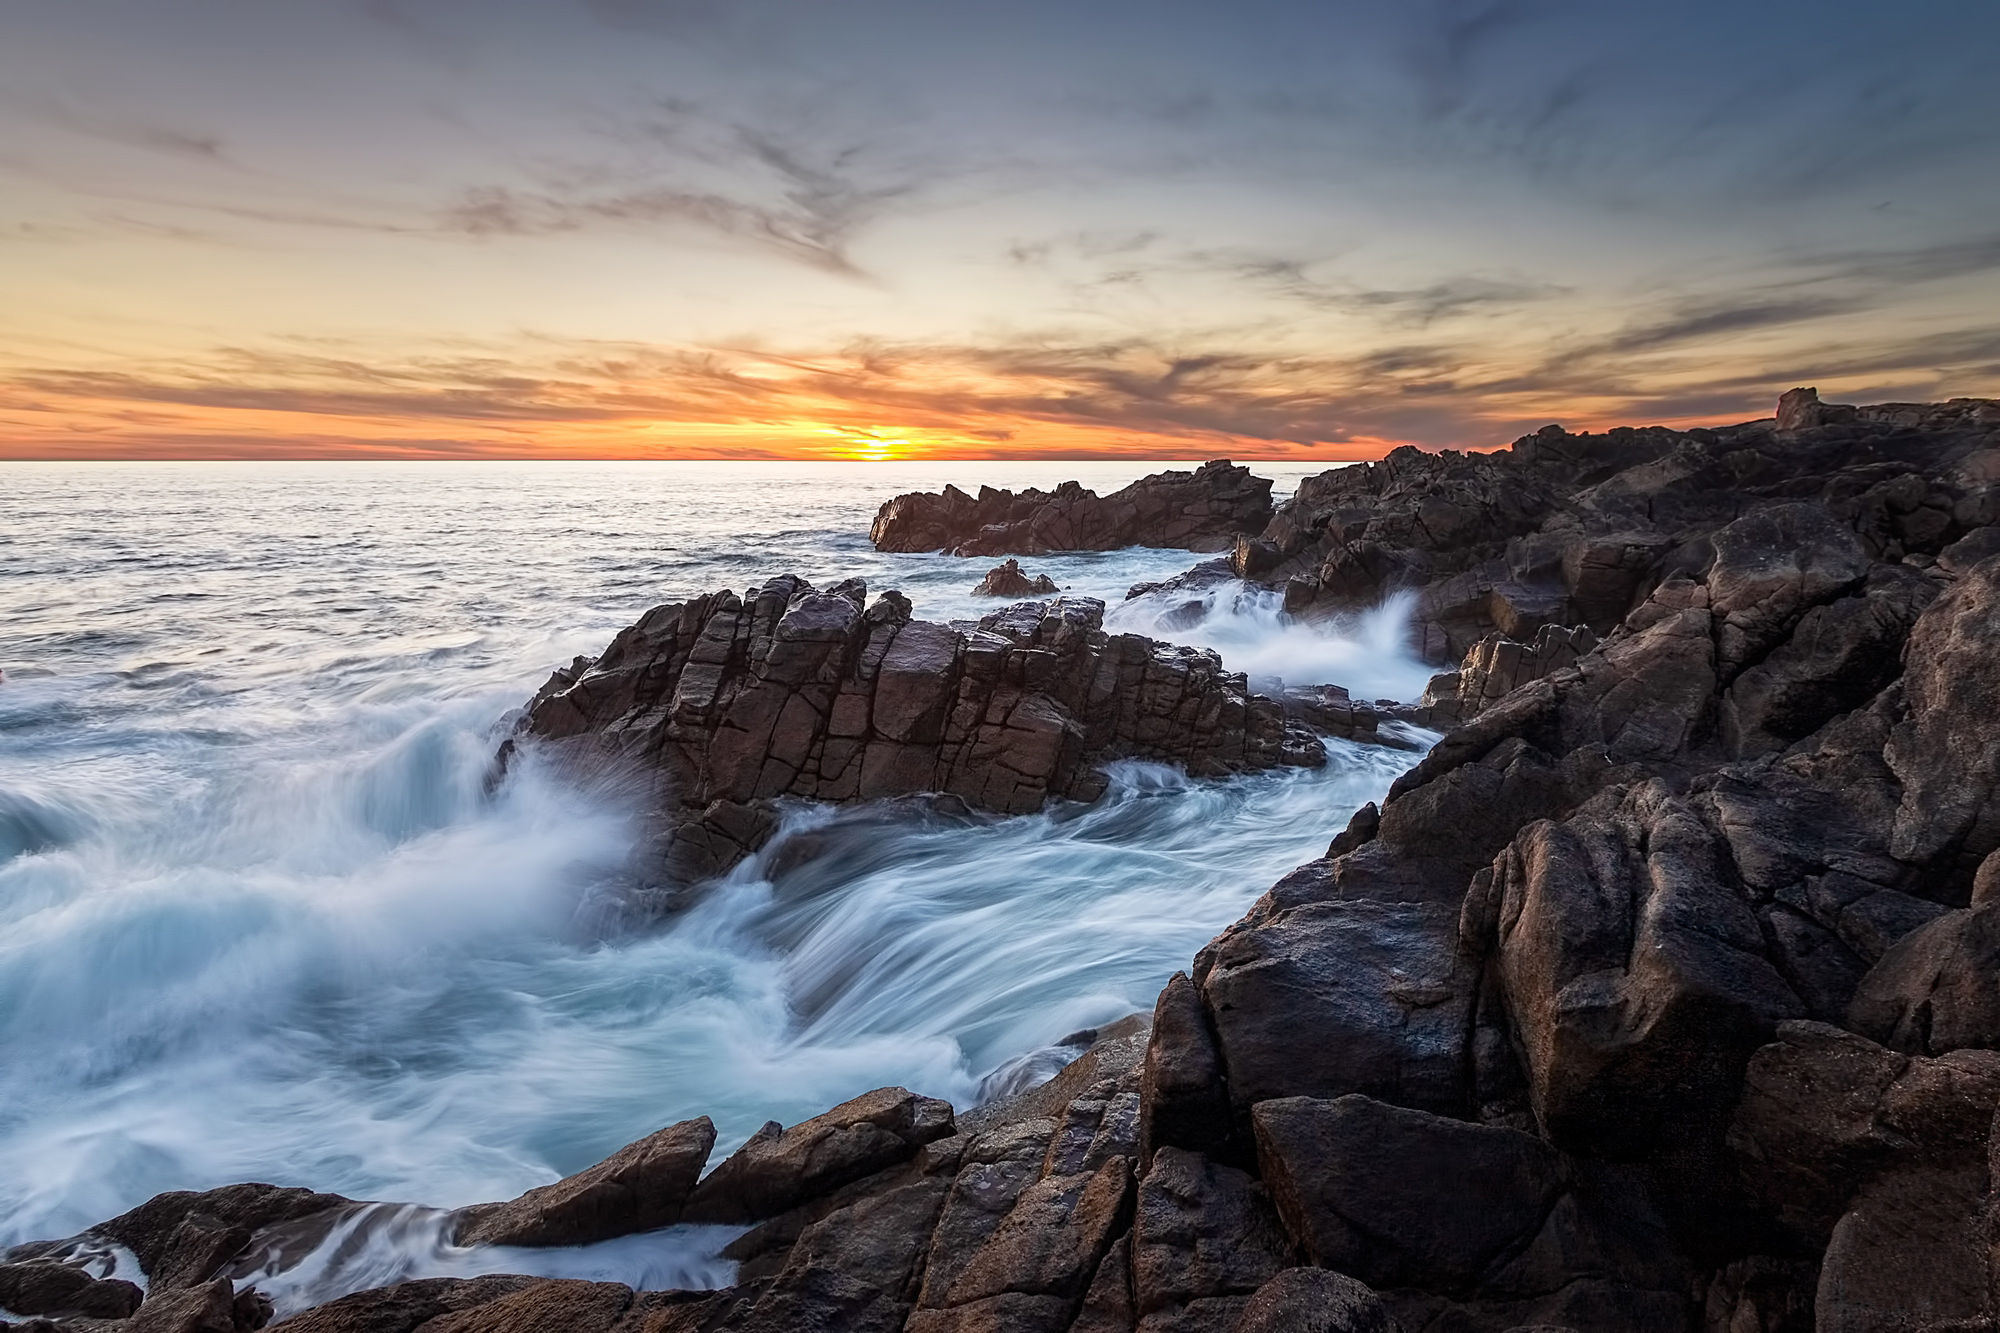 72270 download wallpaper Nature, Rocks, Sea, Surf, Sky screensavers and pictures for free